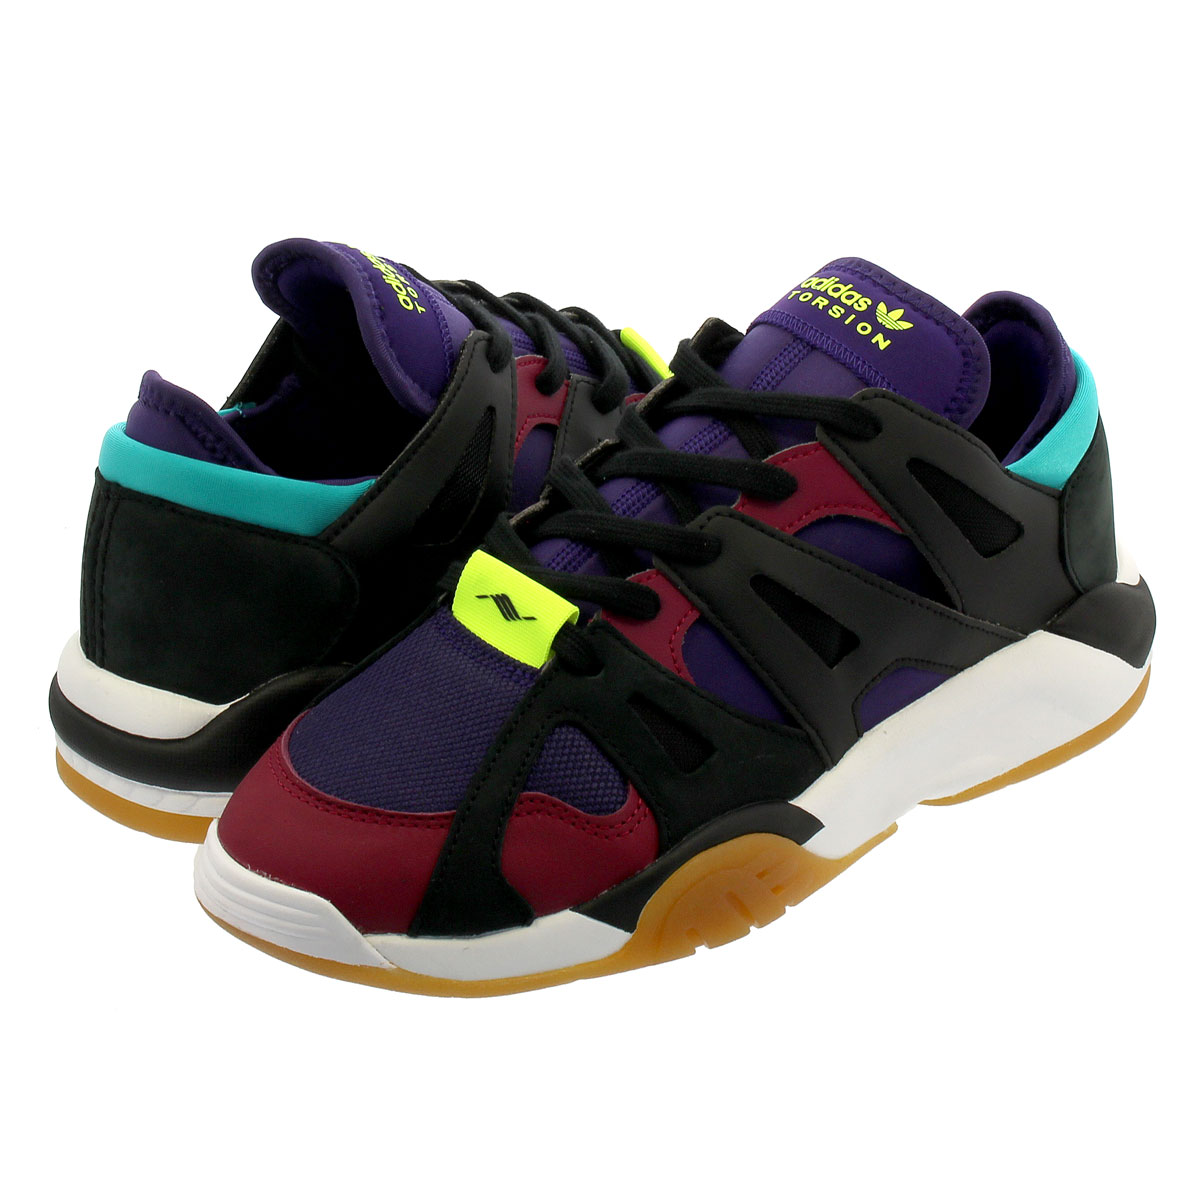 newest 95dc4 f941b adidas DIMENSION LO Adidas dimension low CORE BLACKDARK PURPLEMYSTERY  RUBY f34419